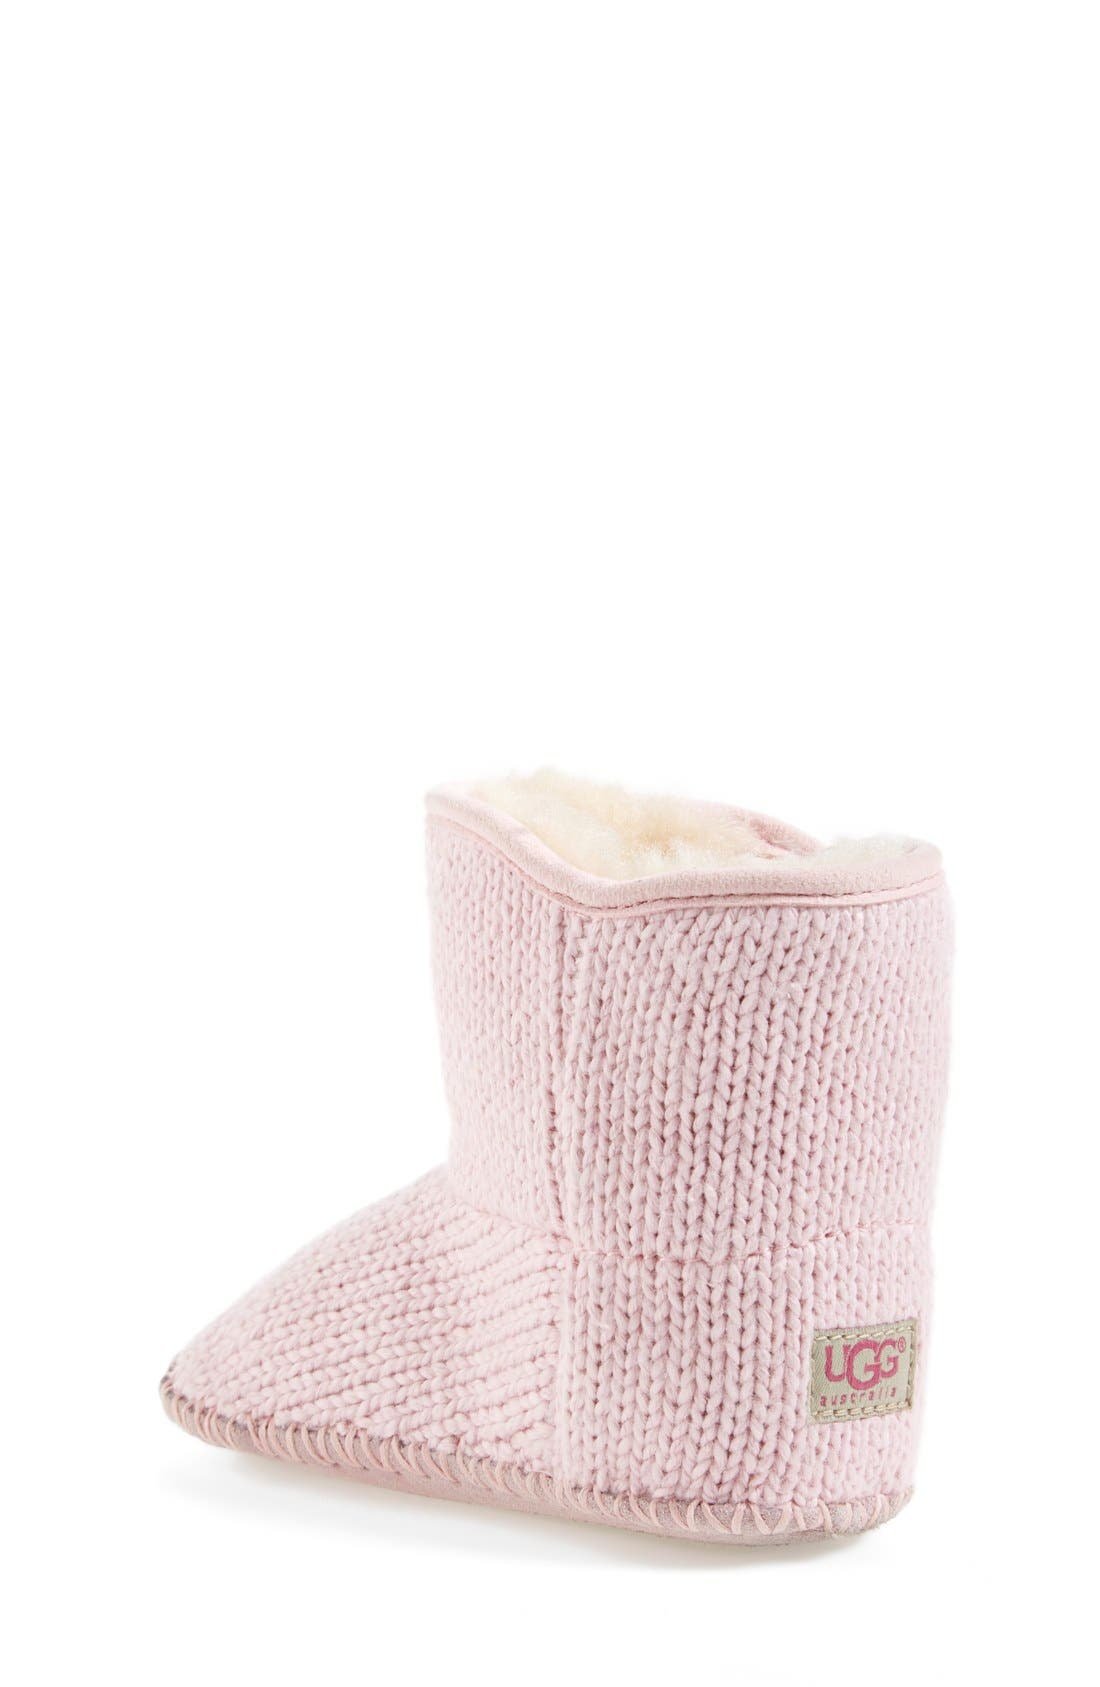 Alternate Image 2  - UGG® Purl Knit Bootie (Baby & Walker)